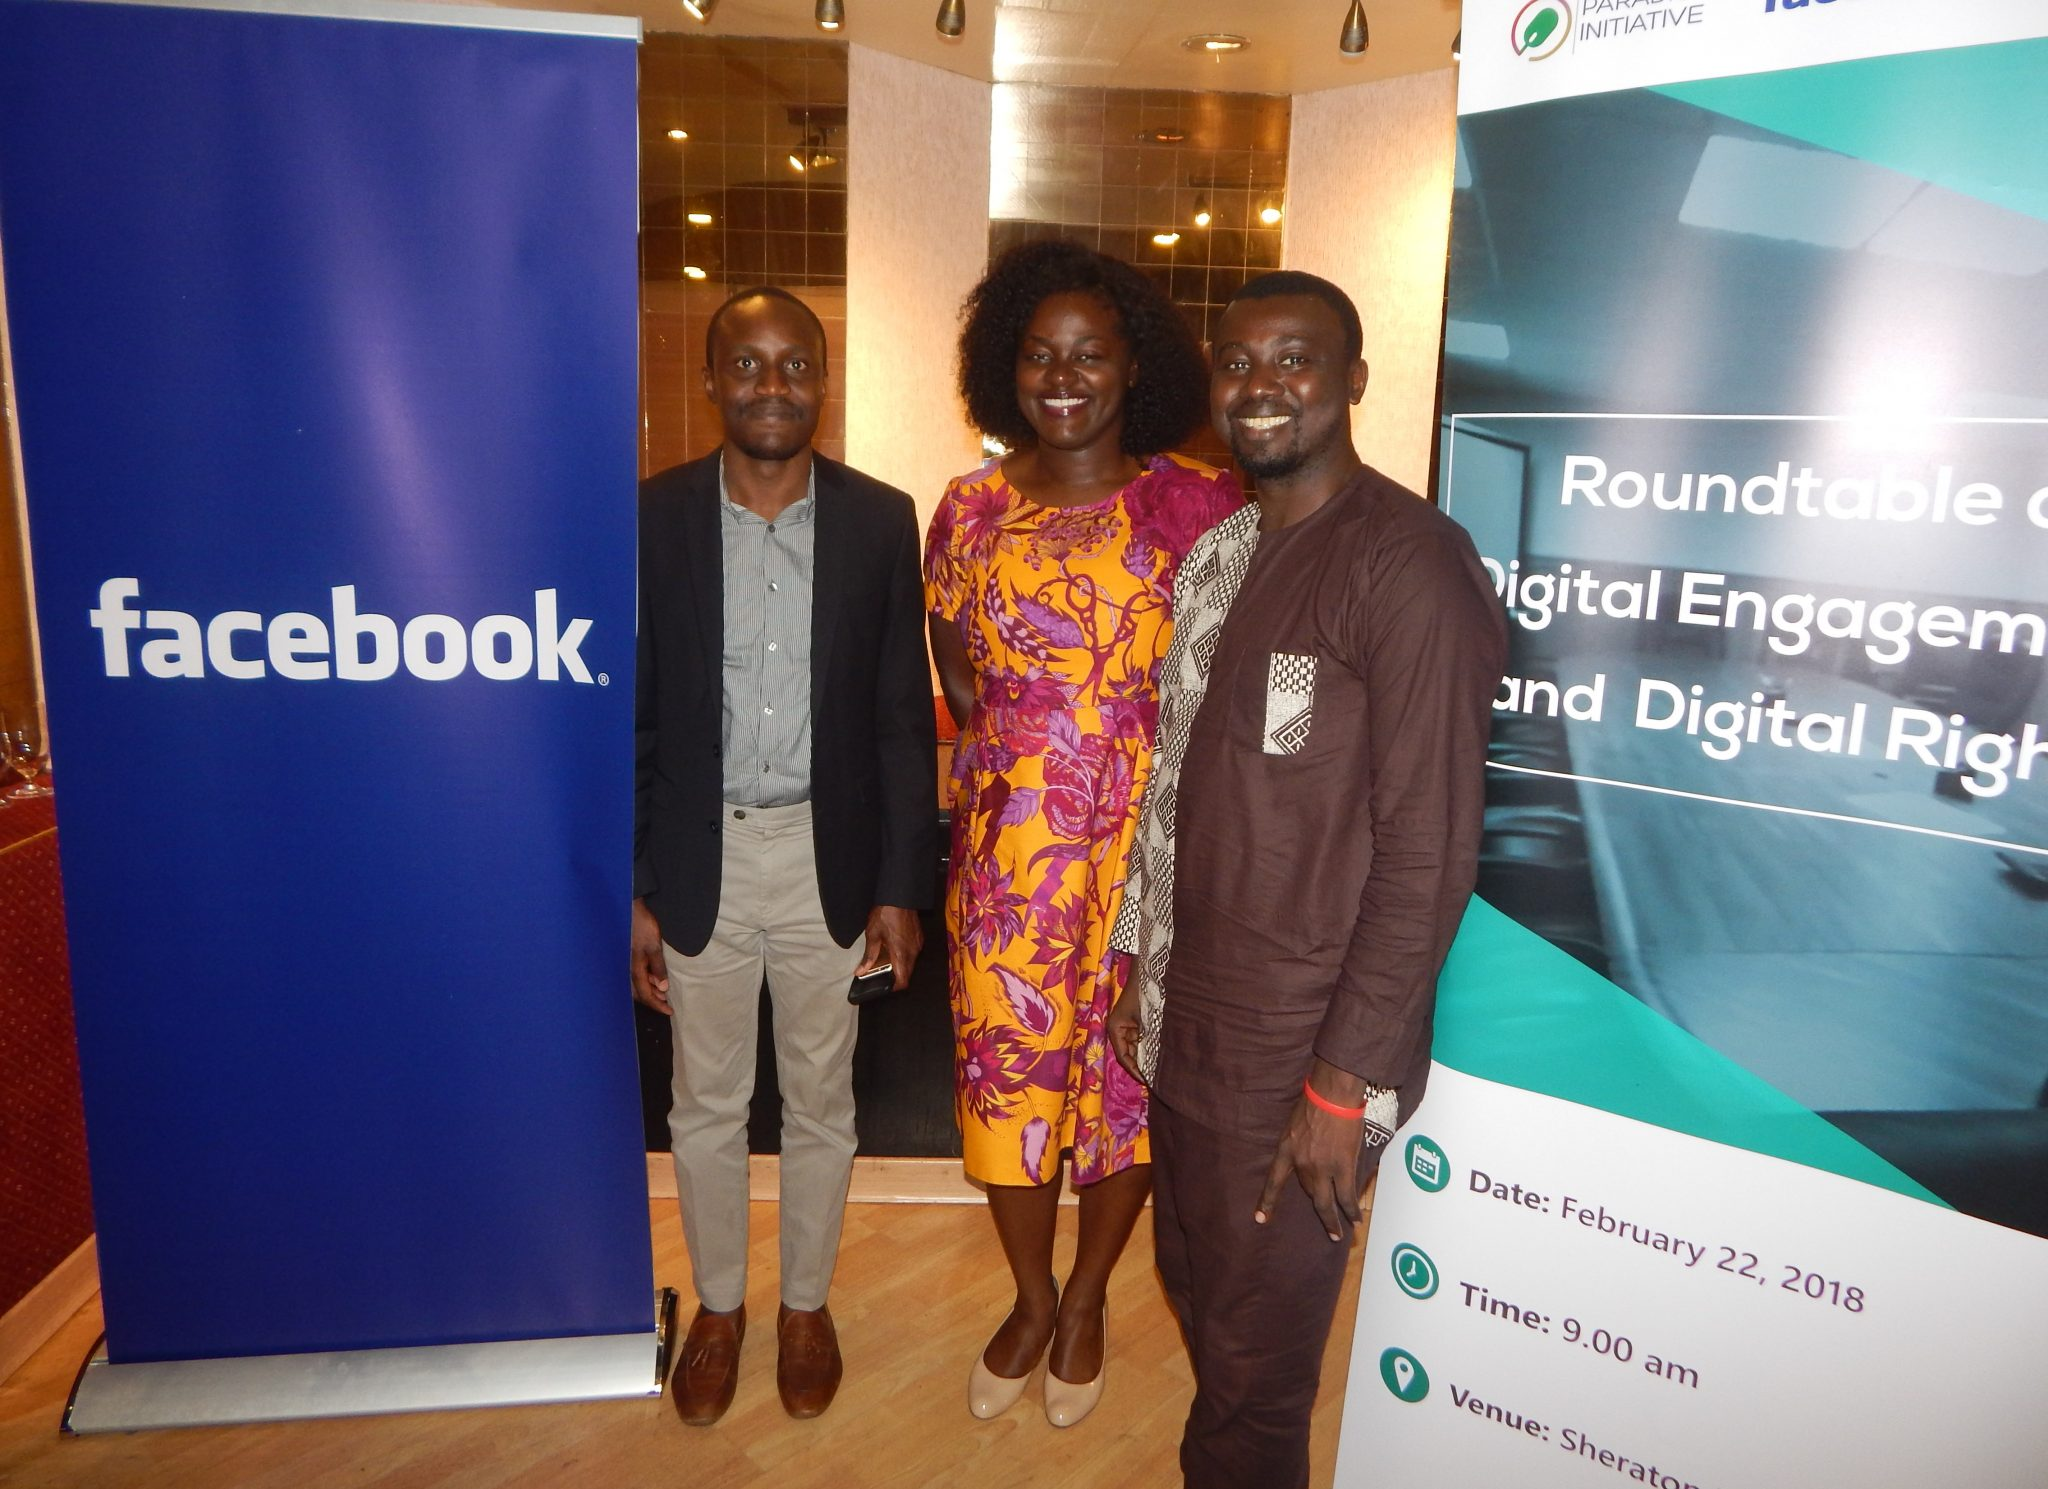 Nigeria | PIN, Presidency, Facebook forge digital engagement alliance